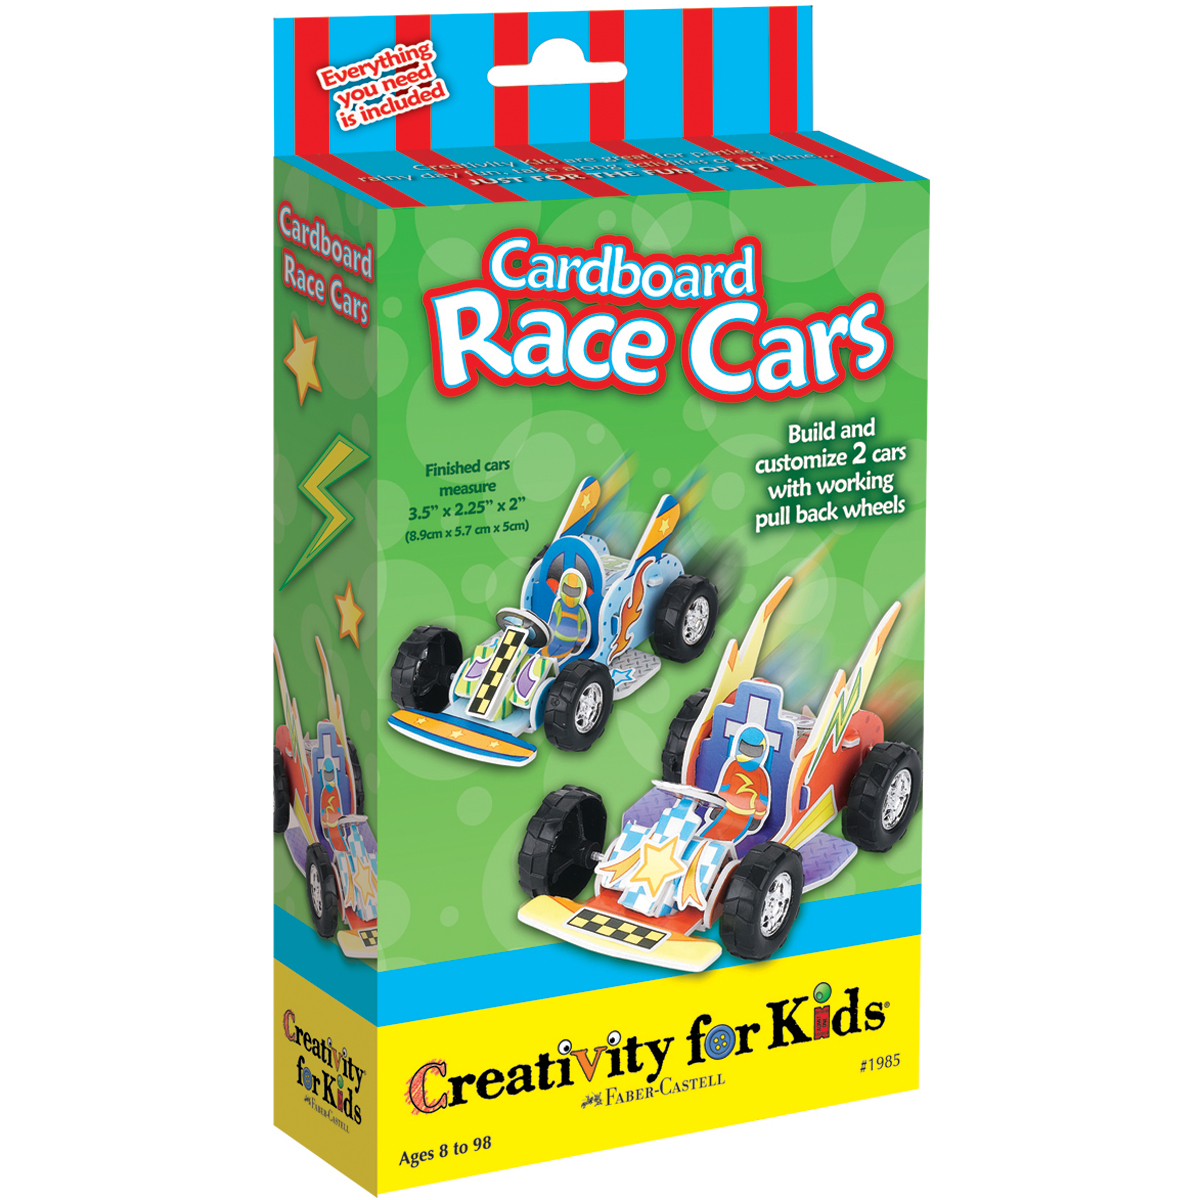 FaberCastell Creativity/Kids Cardboard Race Cars